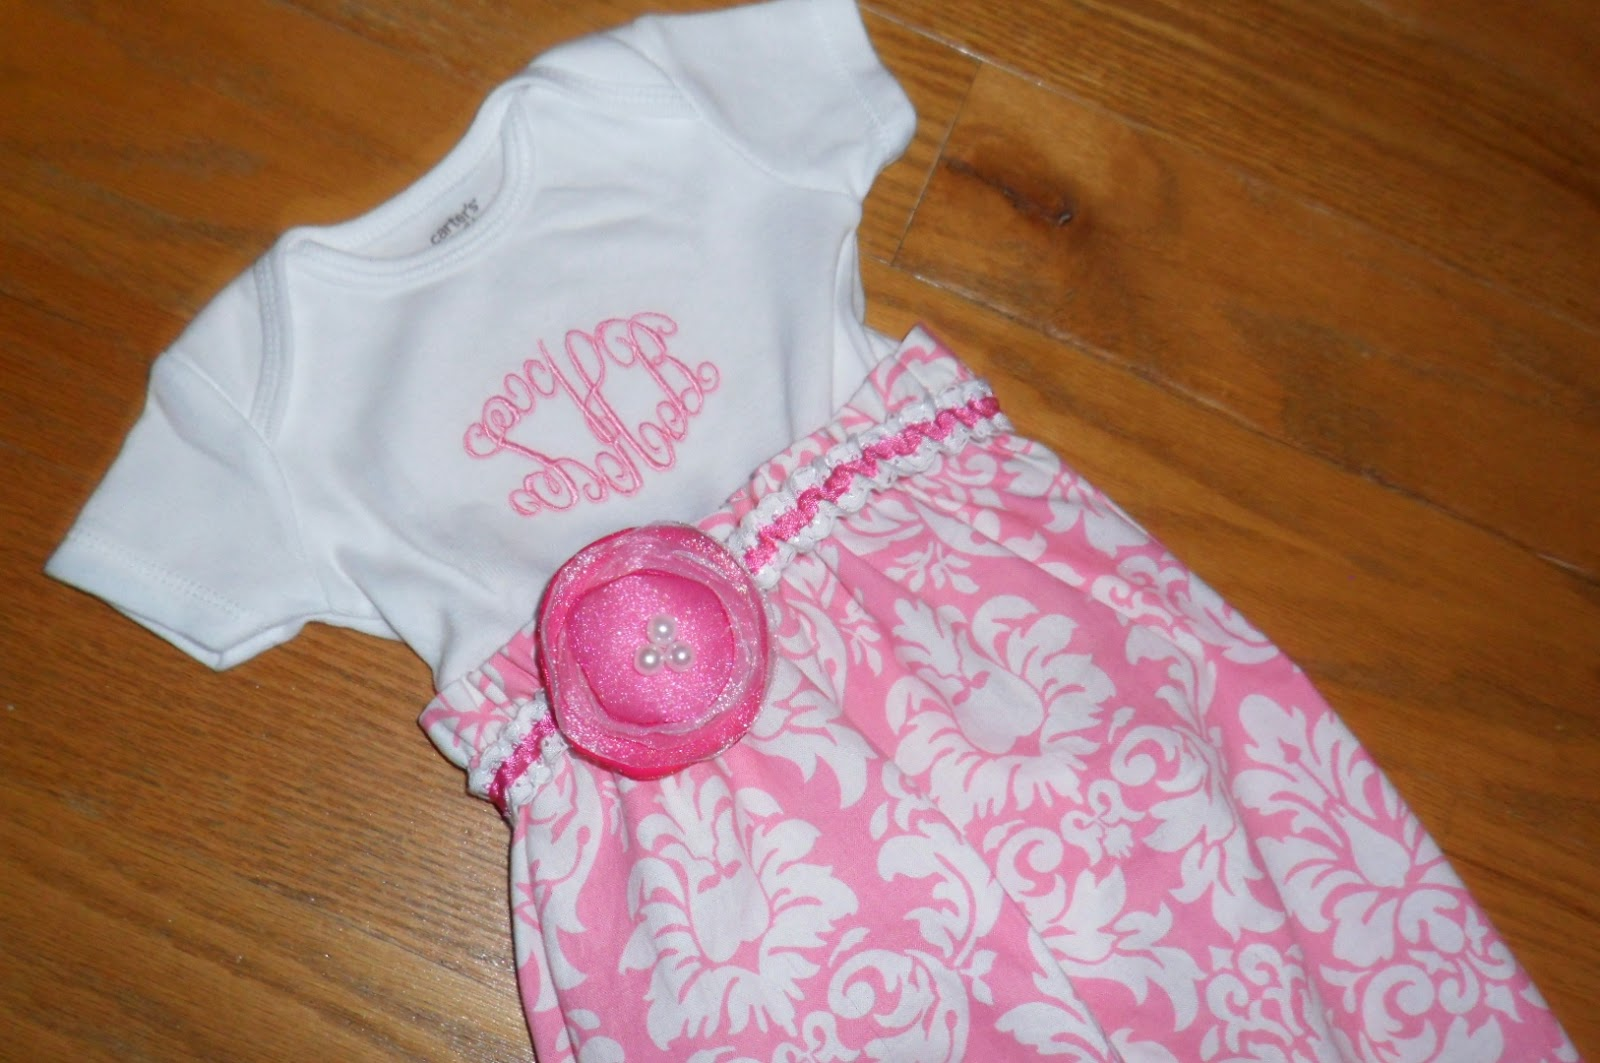 daniKate designs: Baby Gown